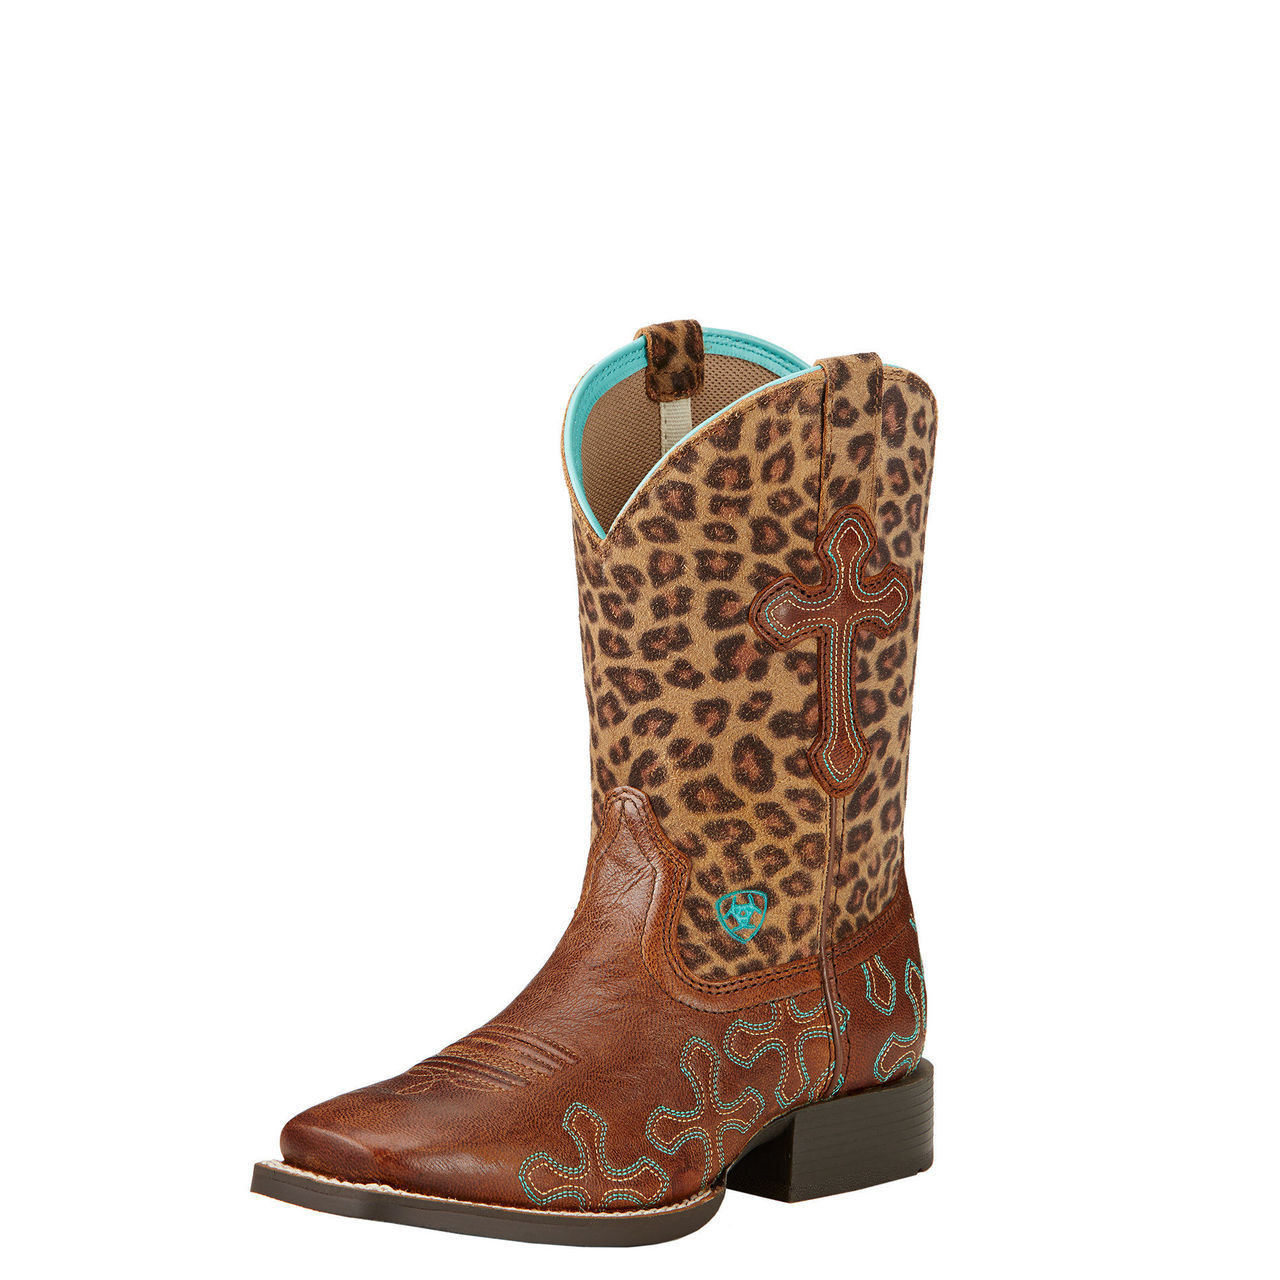 CHILDRENS //YOUTH ARIAT GIRLS SQUARE TOE CROSSROADS WESTERN BOOTS 10017311